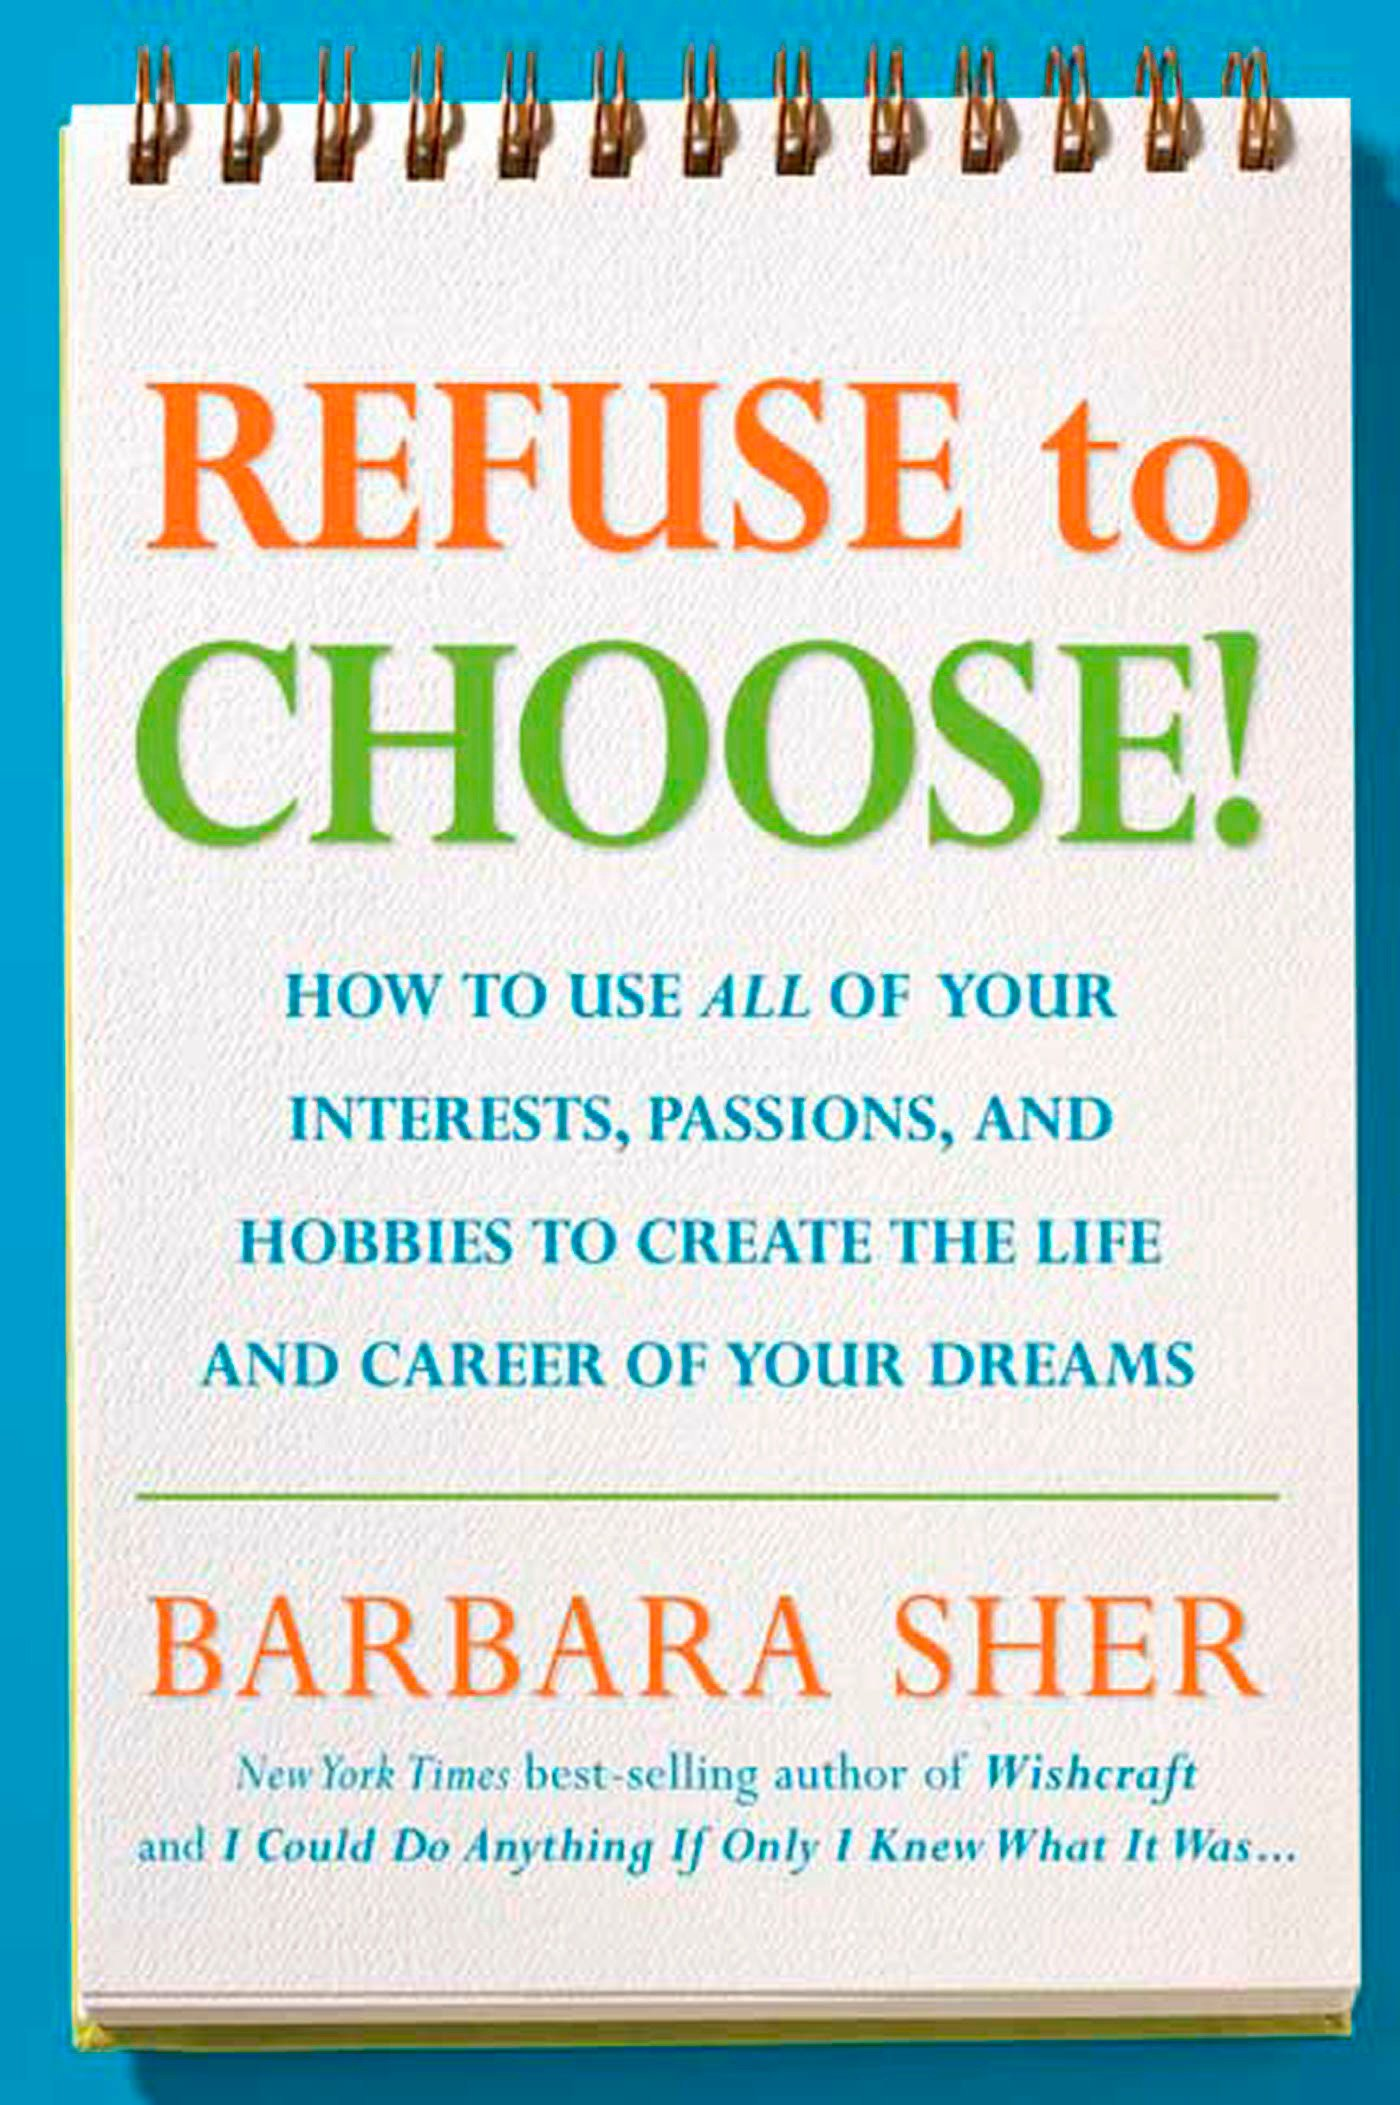 use all of your interests passions and hobbies to create the life and career of your dreams barbara sher 9781594866265 amazoncom books